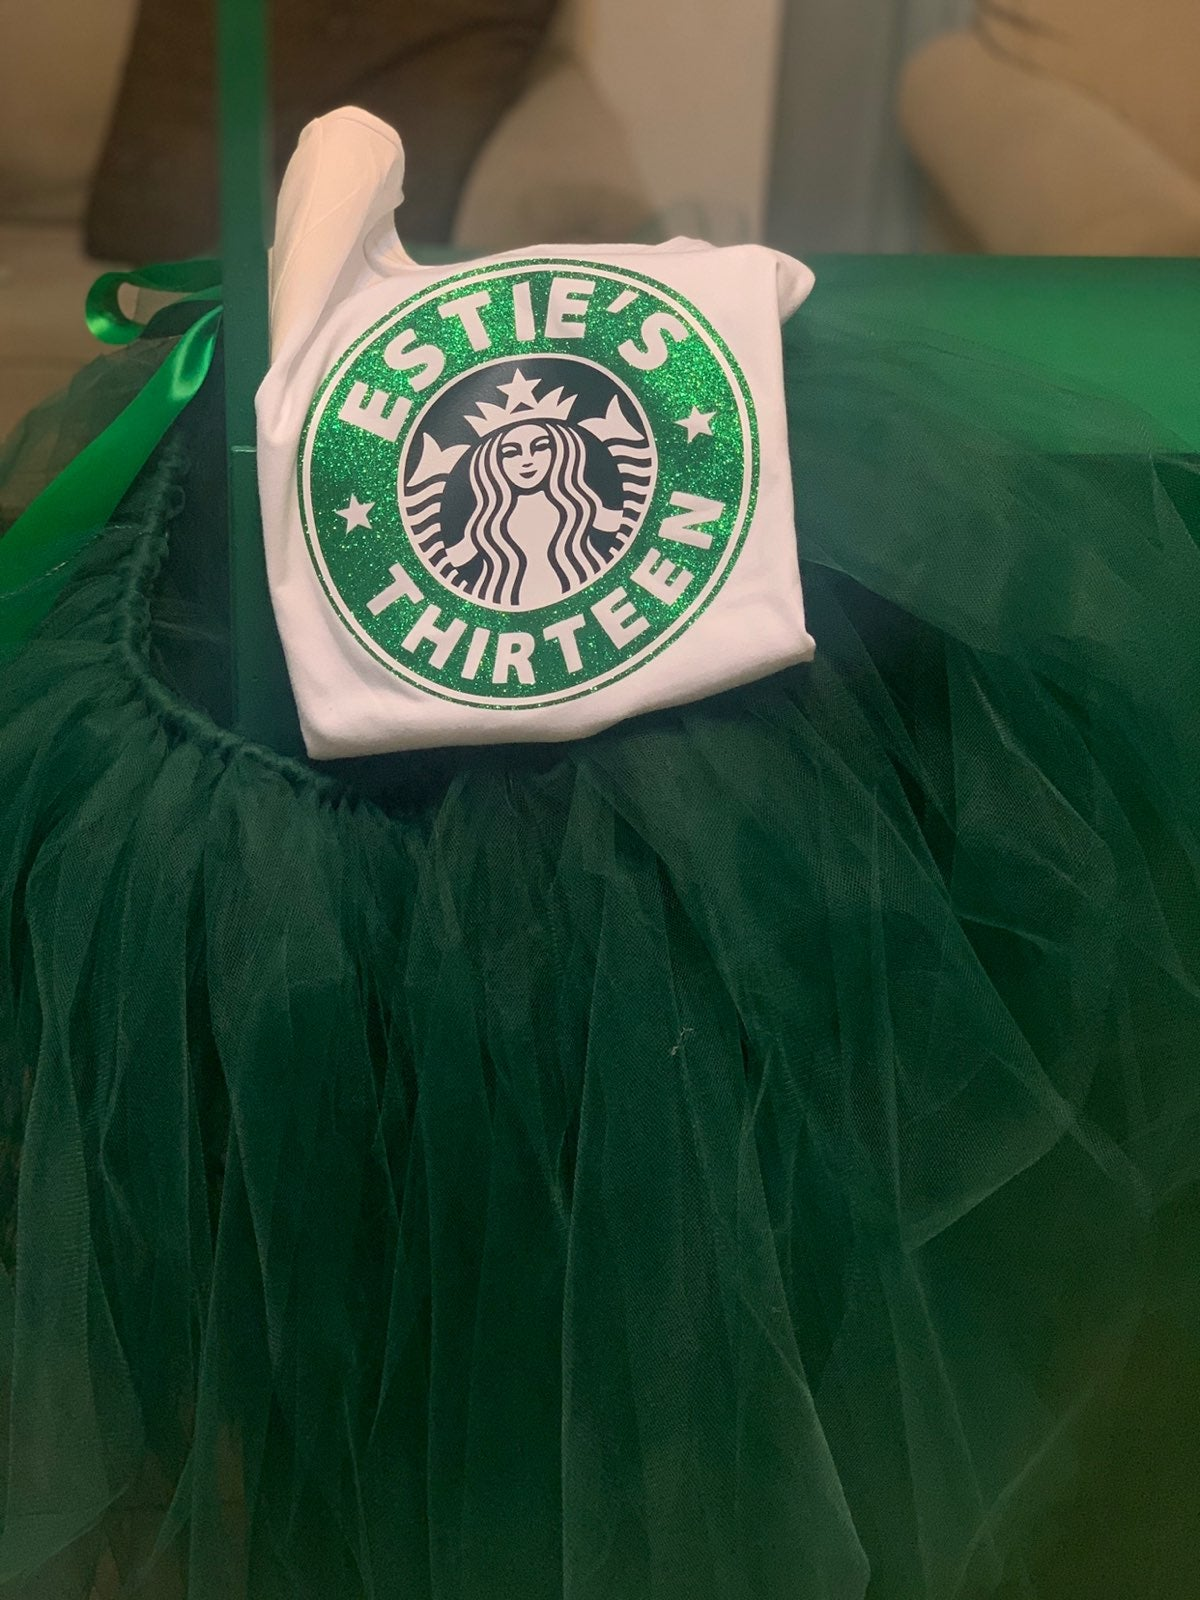 Starbucks birthday outfit